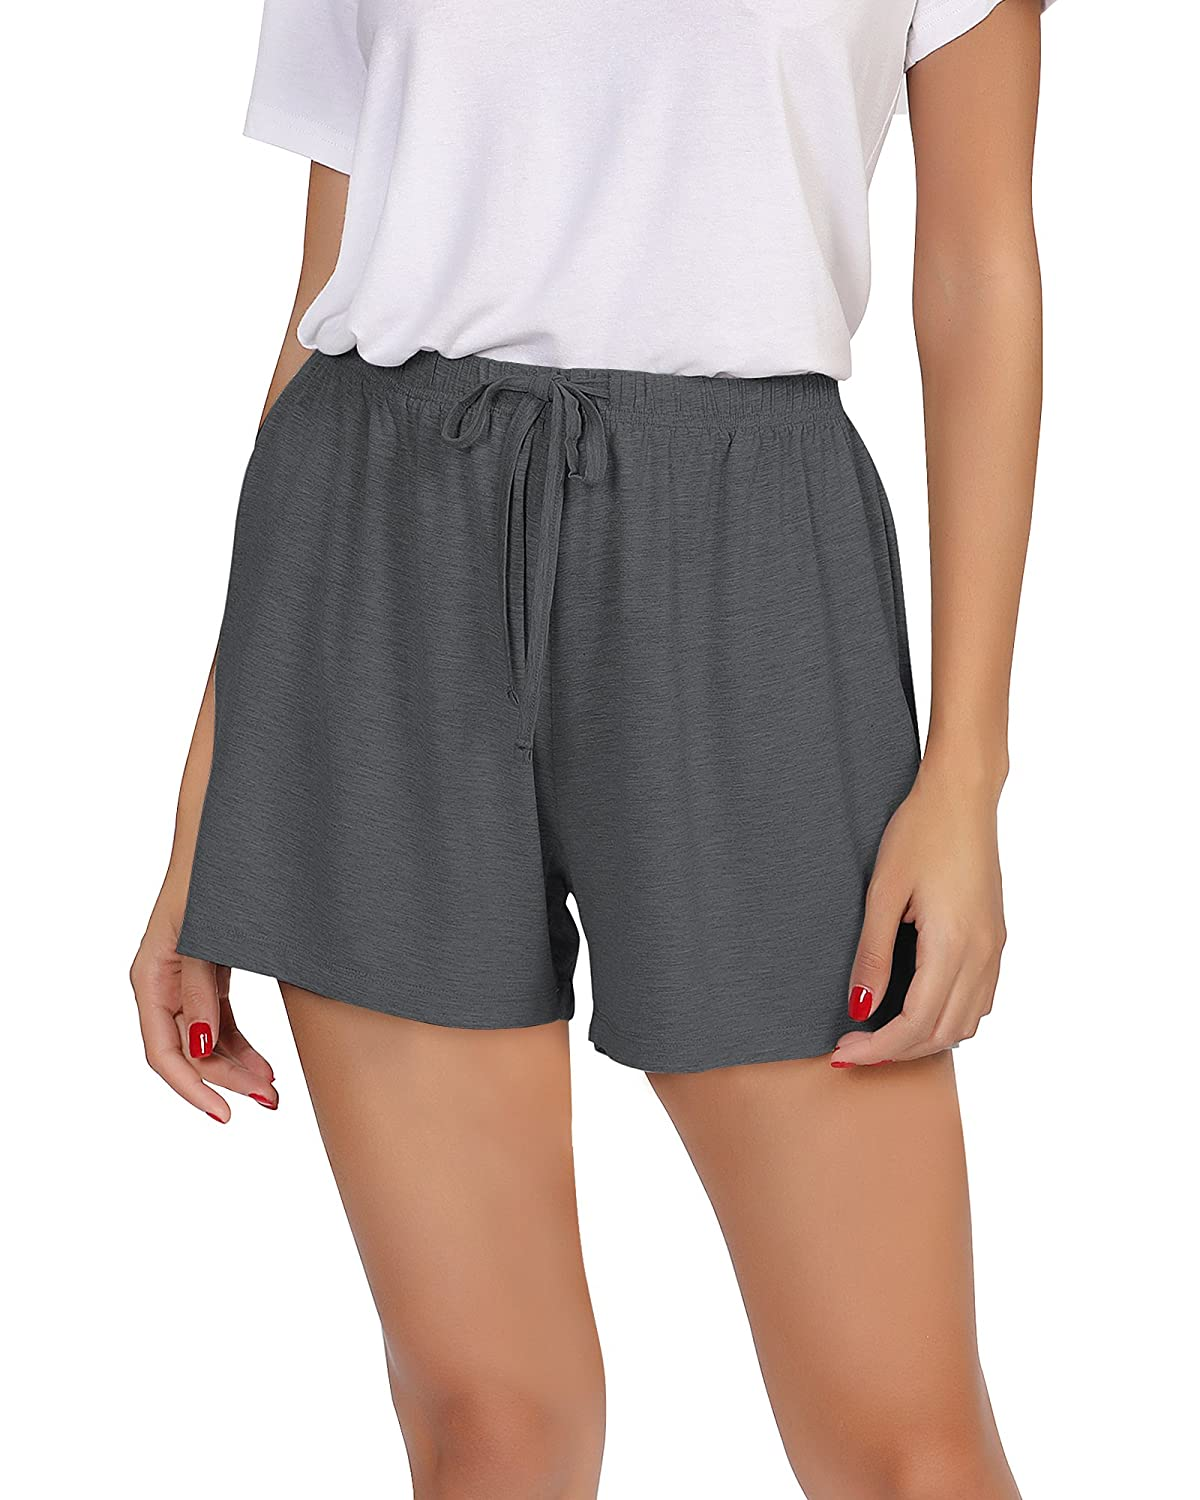 Dark Grey GYS Womens Bamboo Drawstring Pajama Shorts